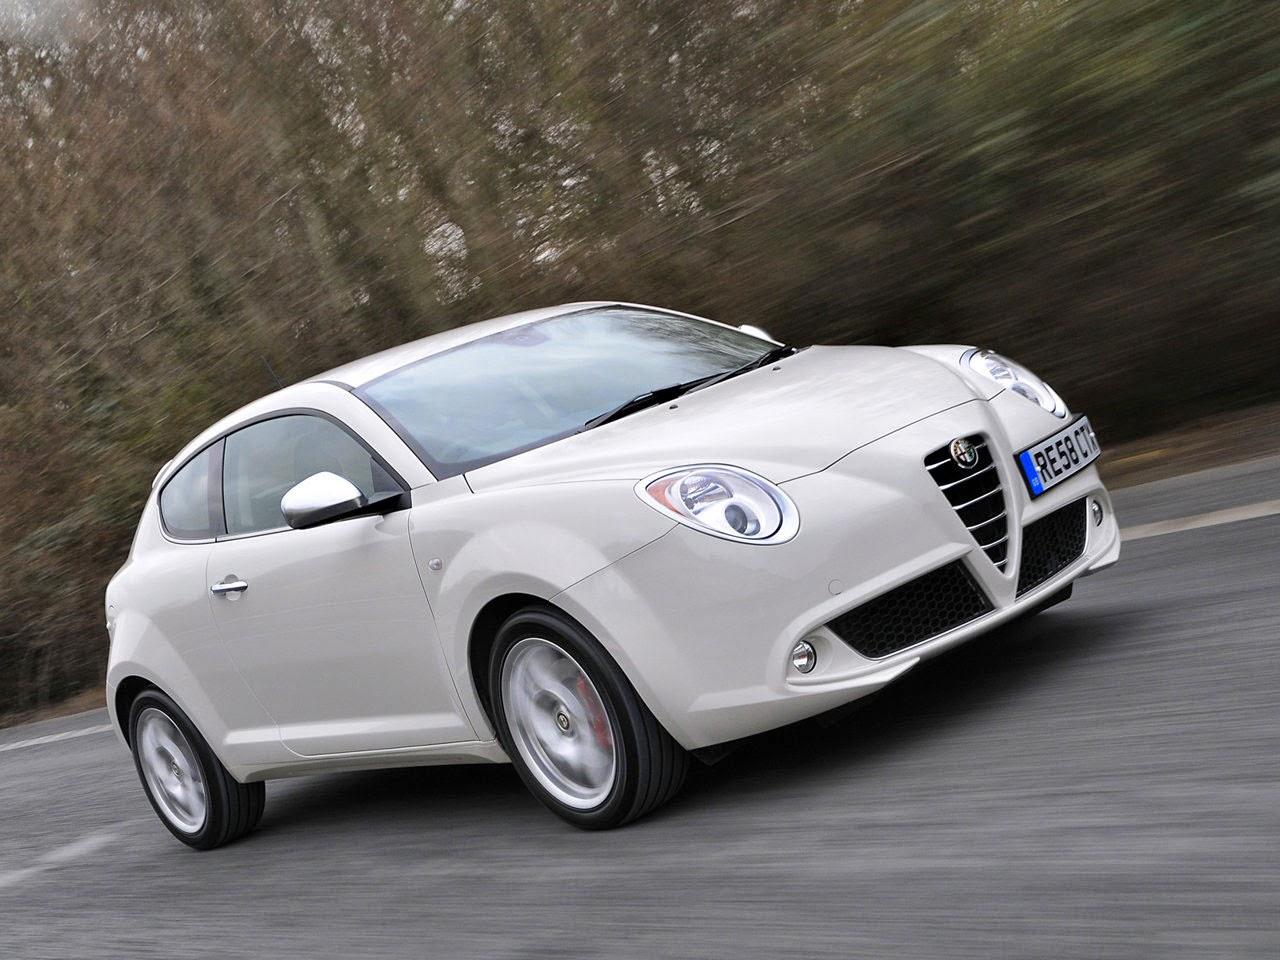 Alfa Romeo Mito Wallpaper